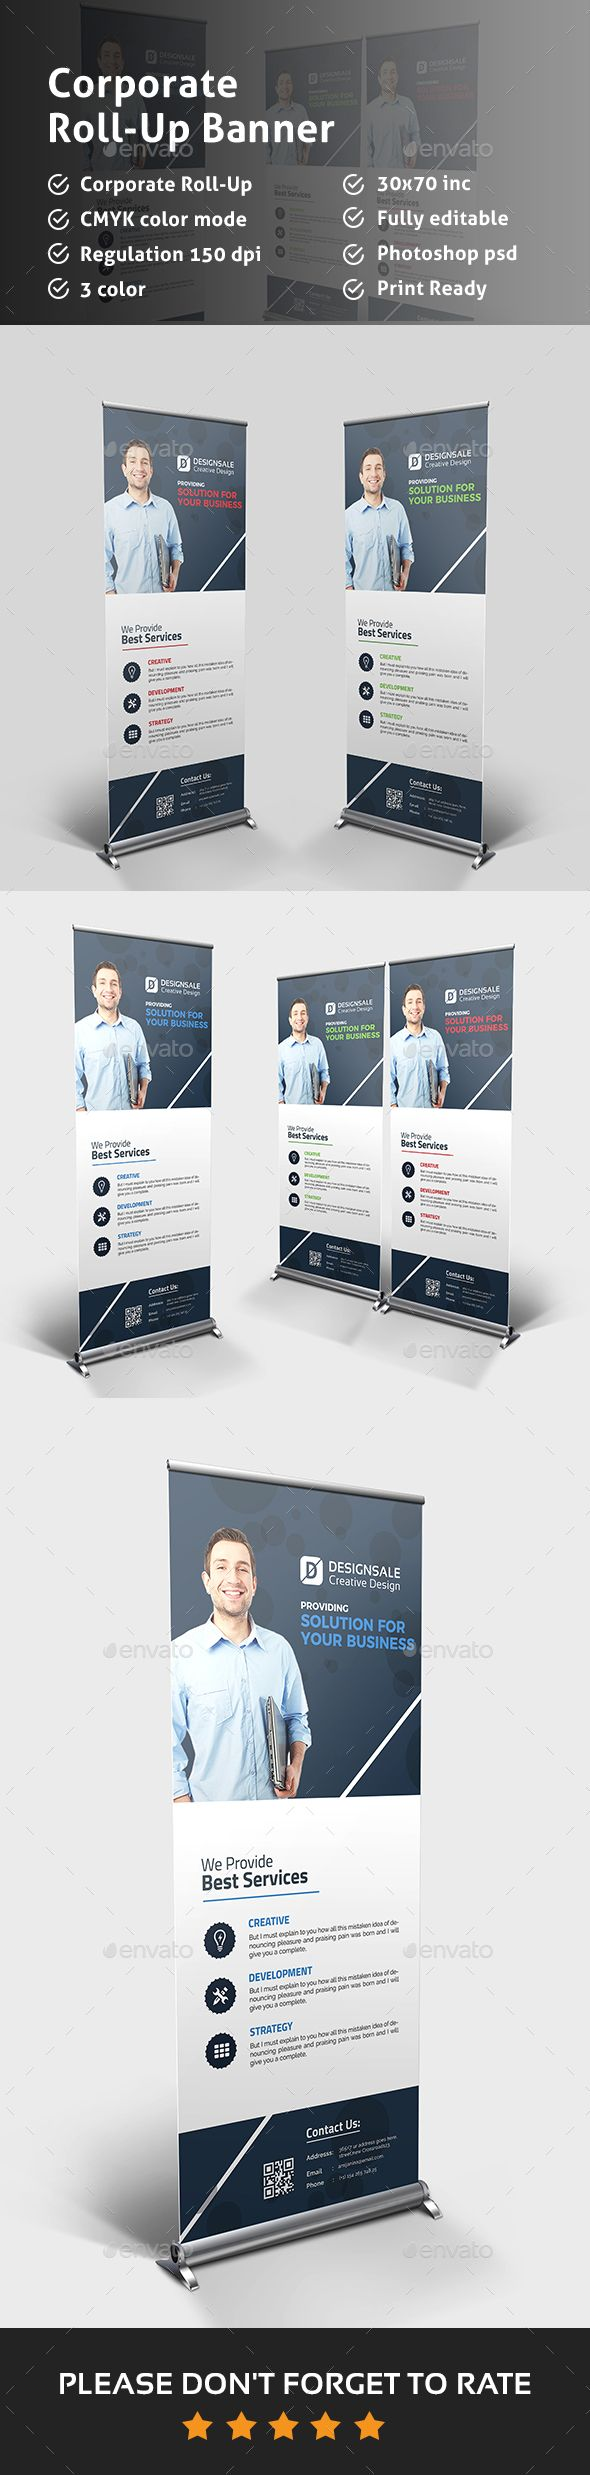 Corporate Roll-up #Banner - #Signage Print Templates Download here: graphicriver...